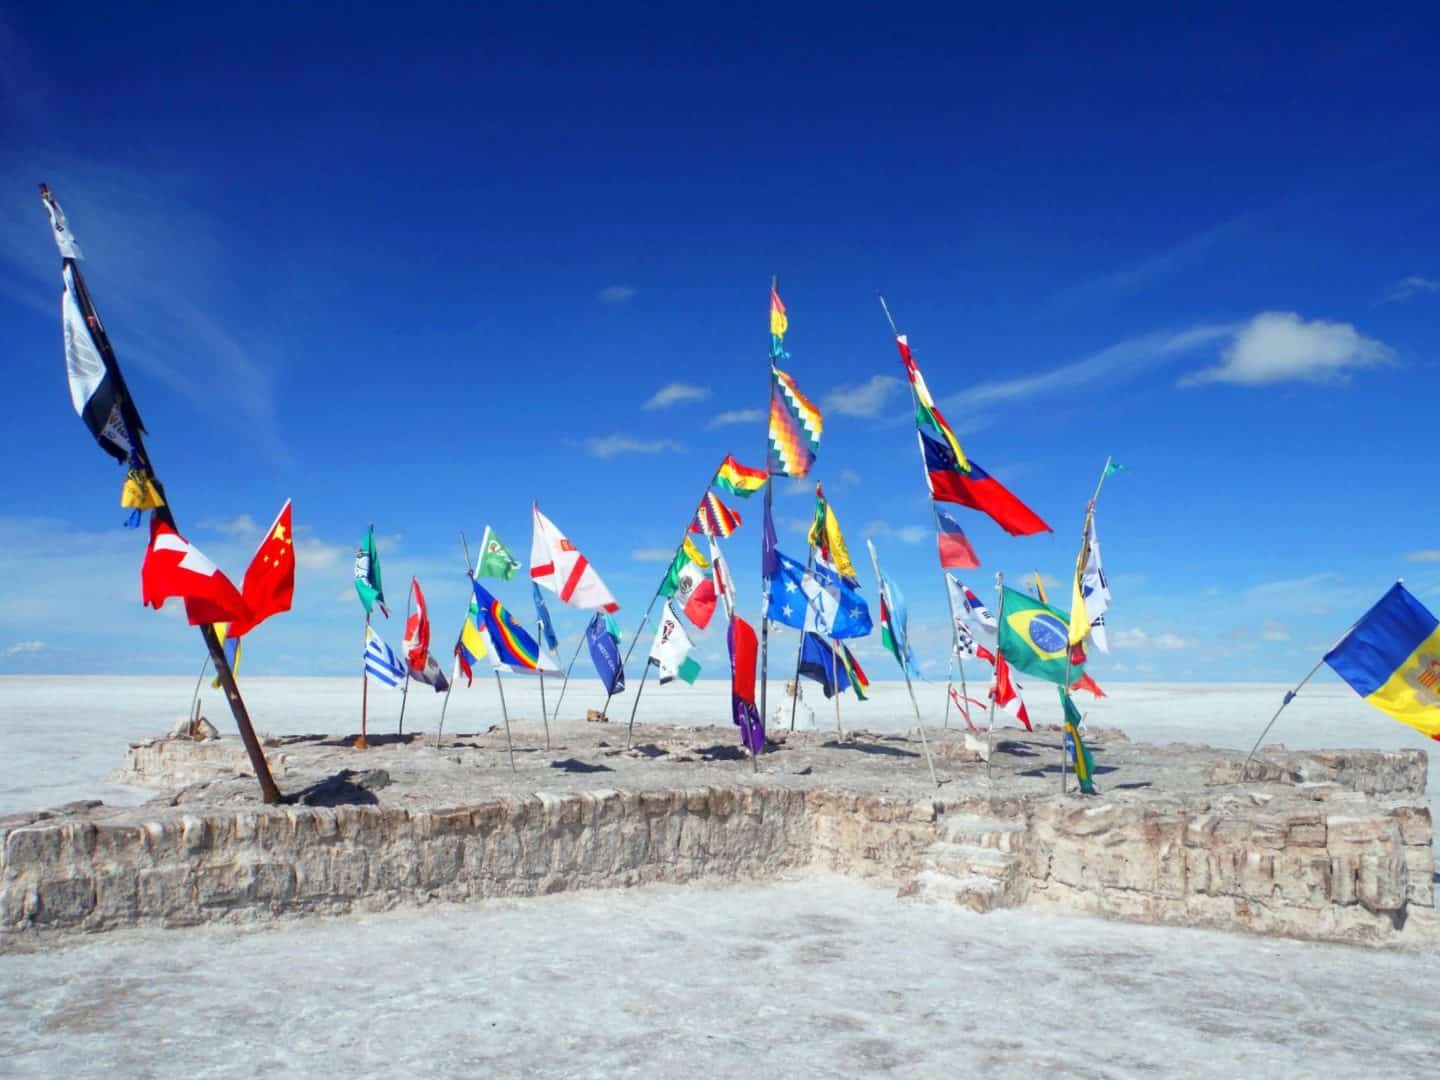 south america must visit places Bolivia Salt Flats